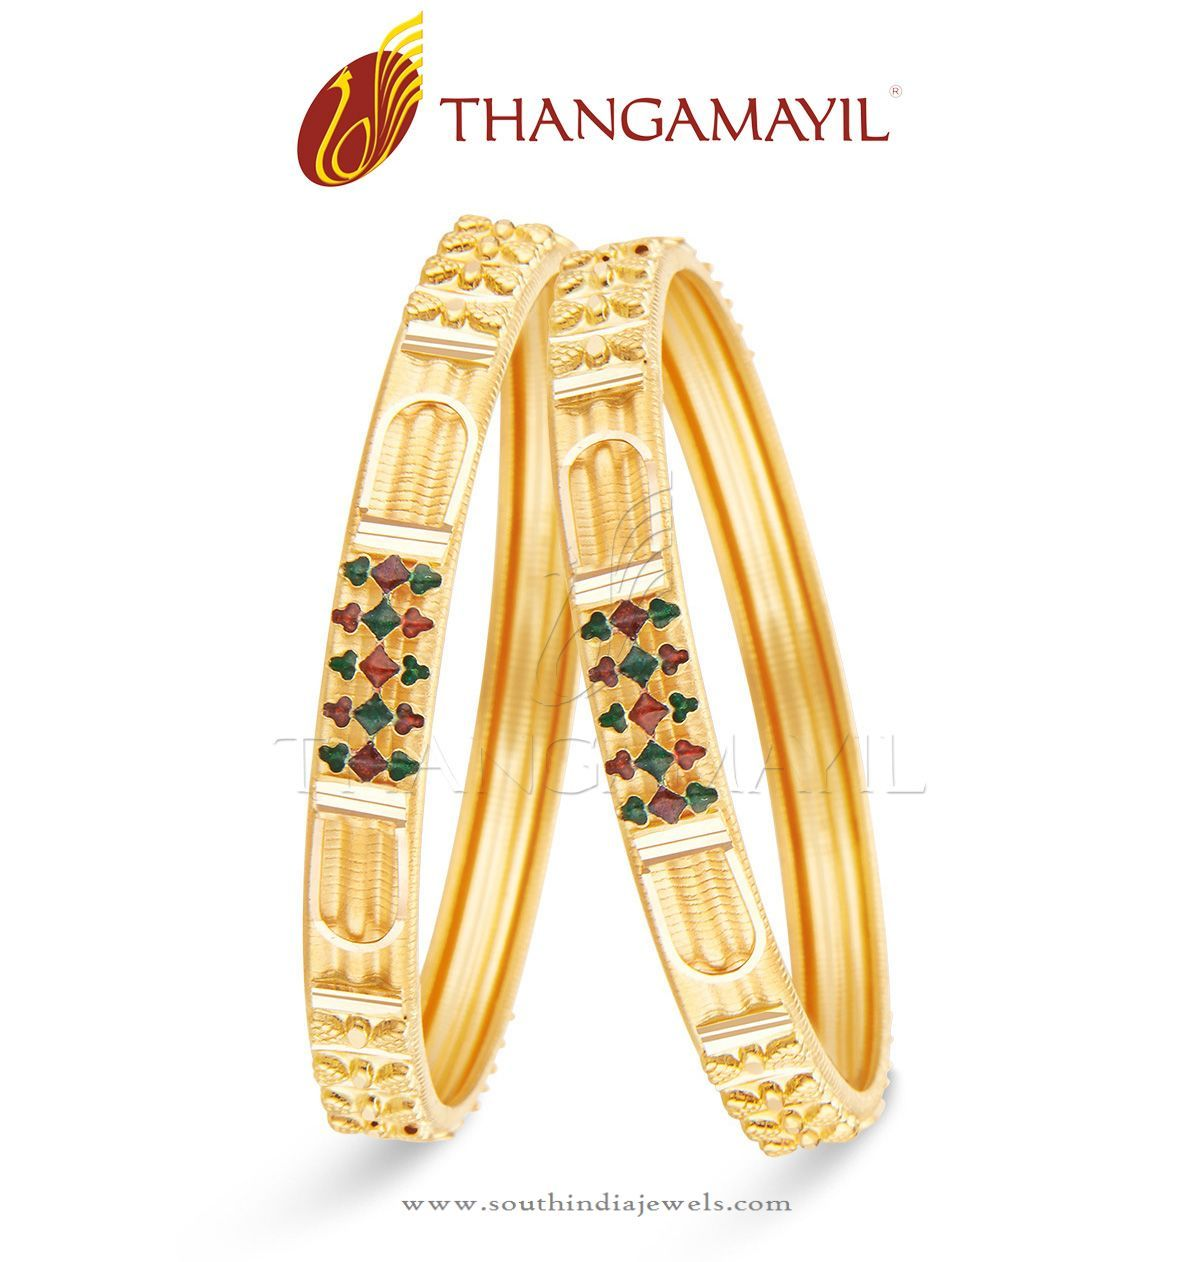 bracelets watches textured gold shipping bangles today overstock free product polished bangle karat jewelry